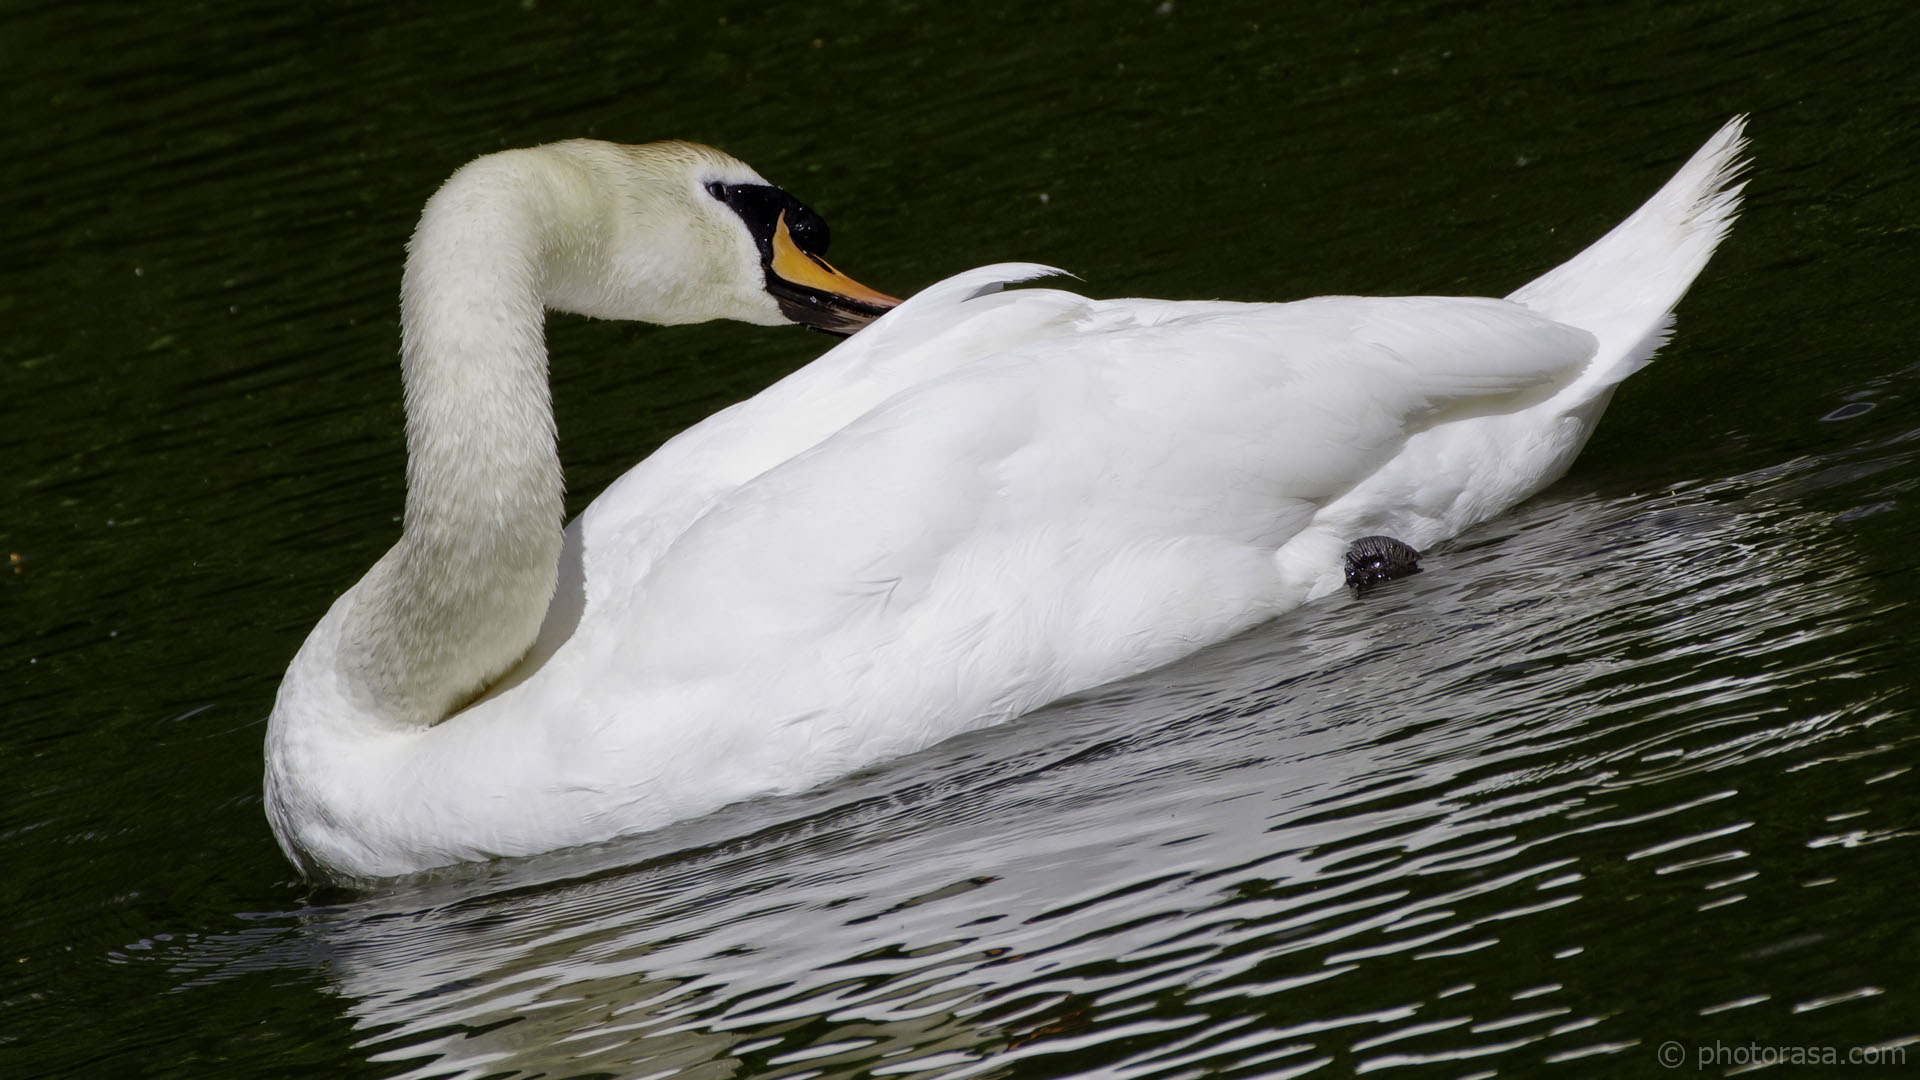 http://photorasa.com/animals/birds/art-swans/attachment/swan-neck-three-point-turn/